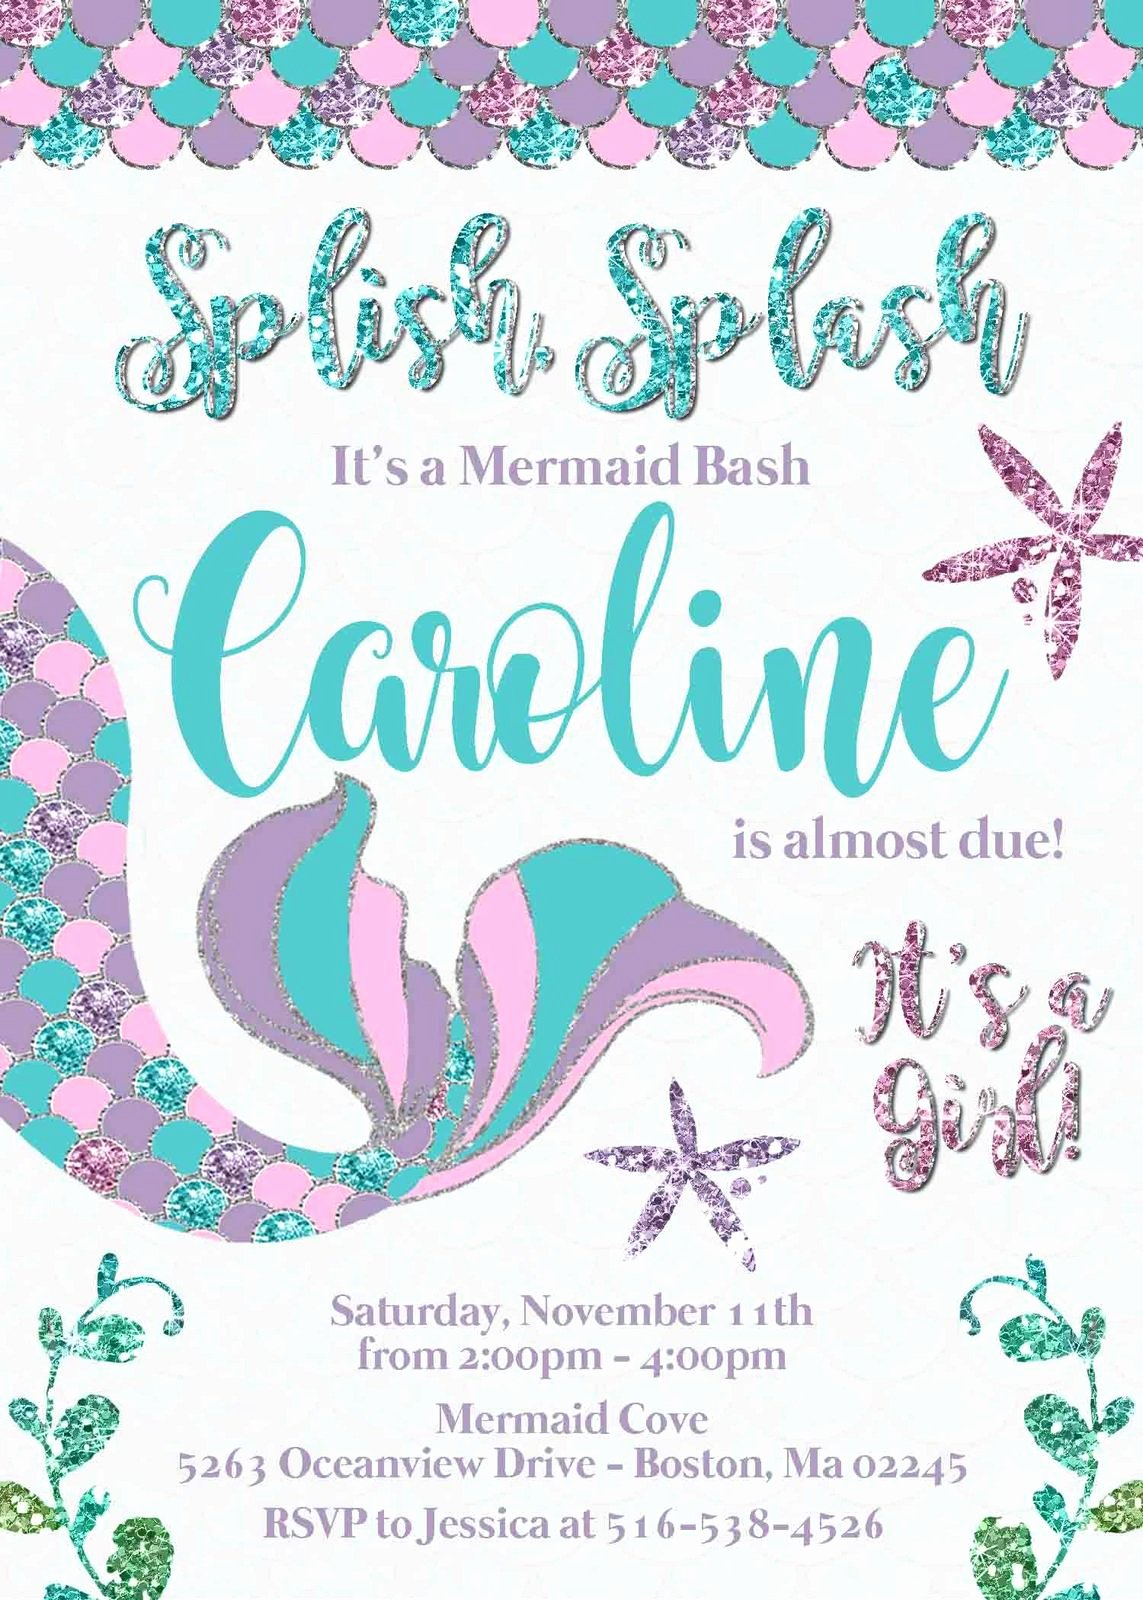 Mermaid Baby Shower Invitations Best Of Mermaid Baby Shower Invitation Teal Lavender Pink